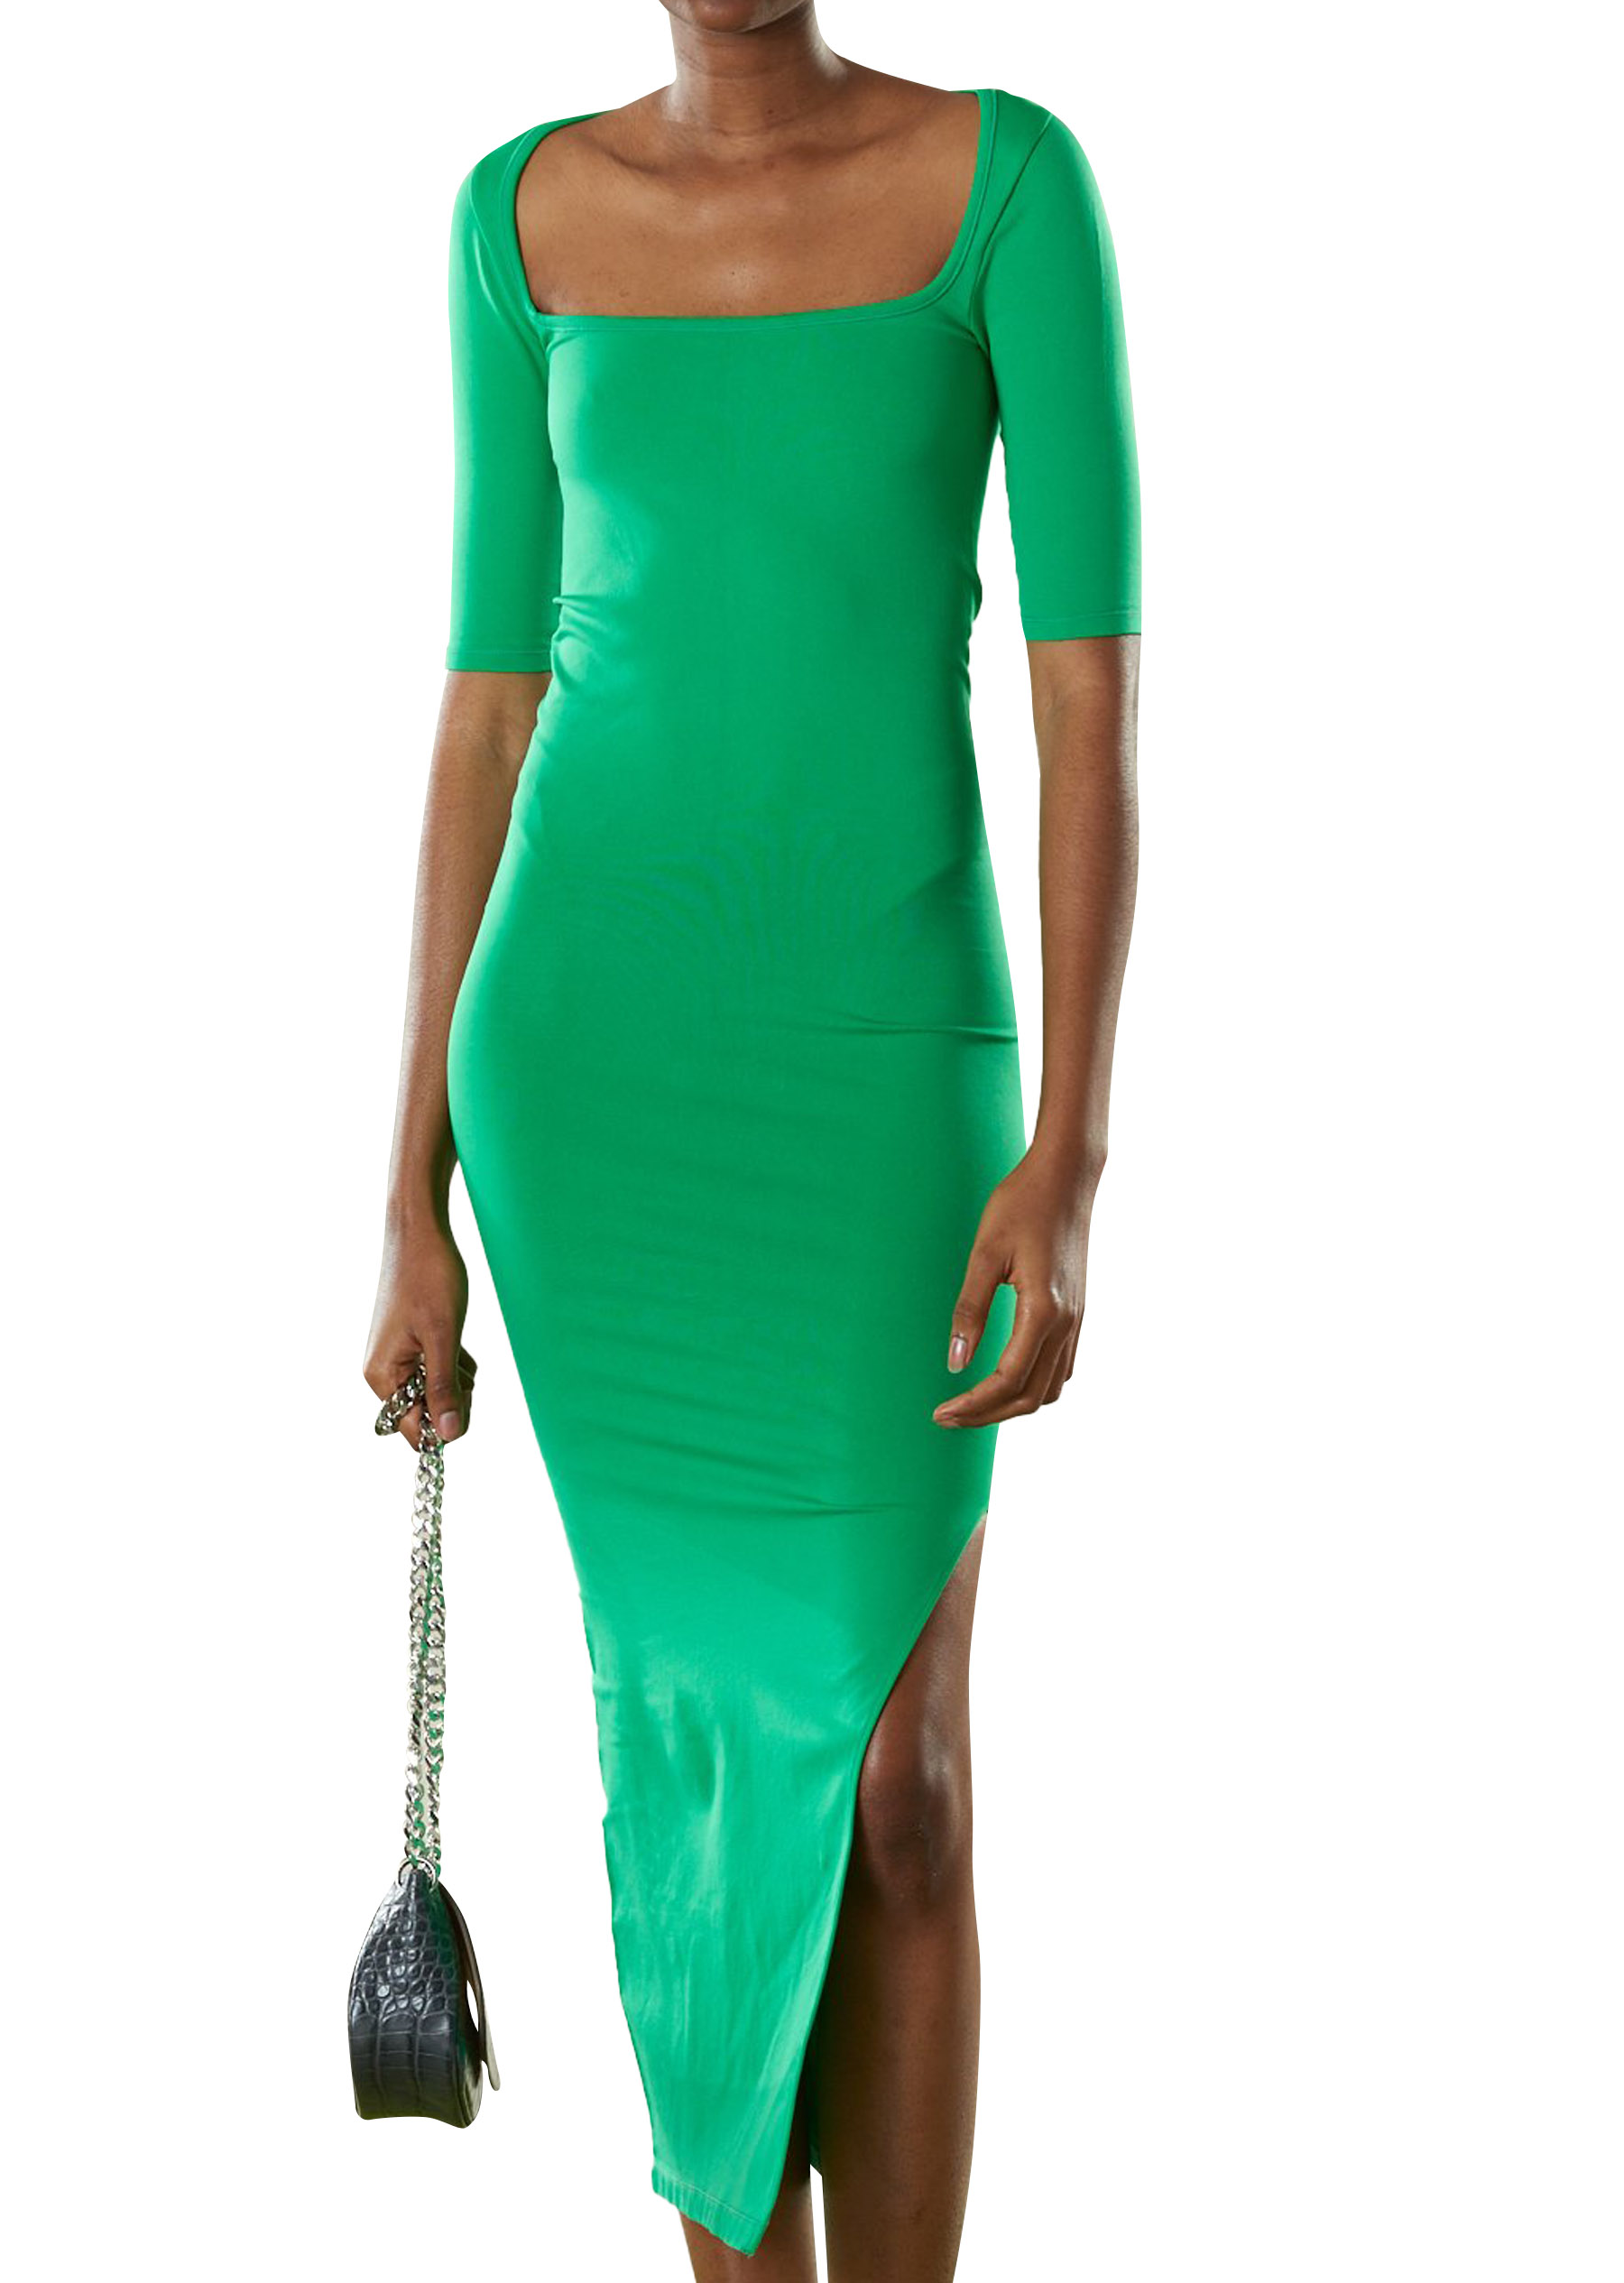 STRETCH Mies Dress in Jungle Green by Simon Miller - 1